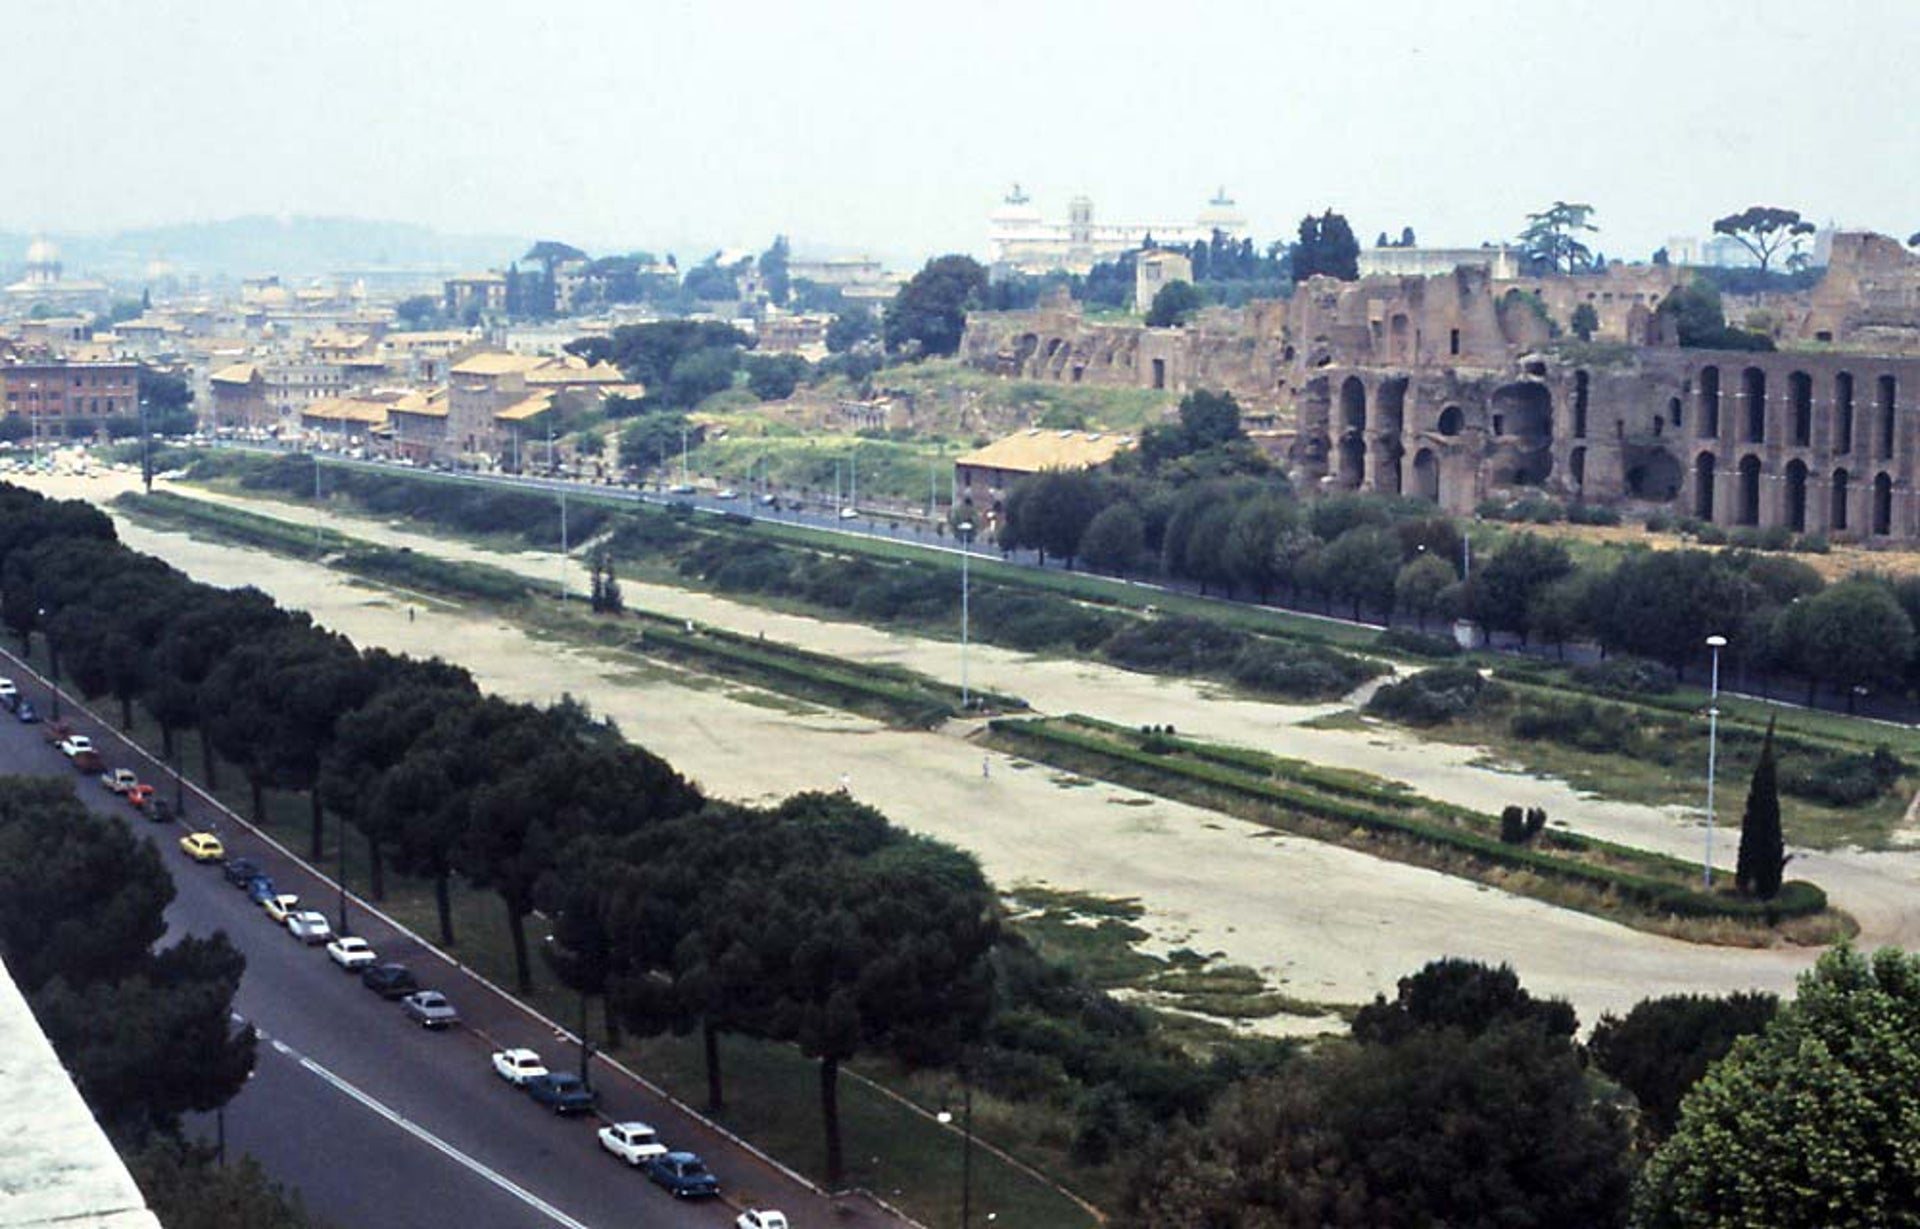 The Circus Maximus in Rome, the biggest chariot racing track in the ancient world, which could accommodate some 150,000 people. The track in Carthage was the second-biggest.